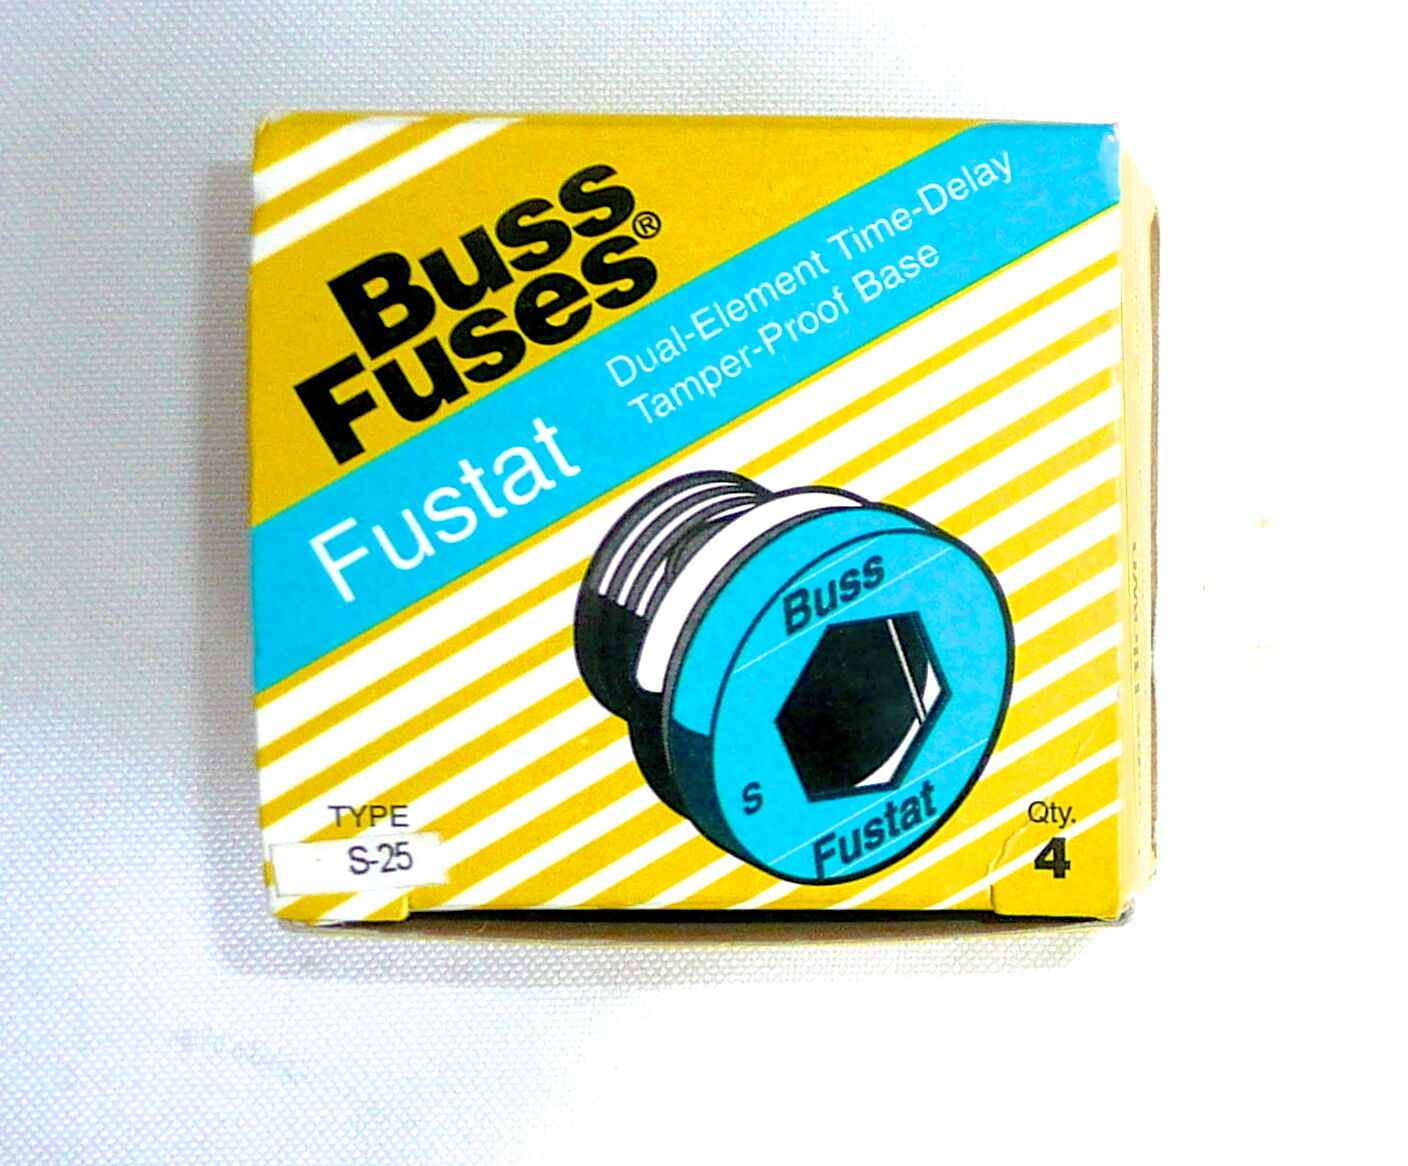 Buss Fuses Fuse Fustat Type S 25 Box Of 4 Dual Element For 125v Or 1 6free Shipping